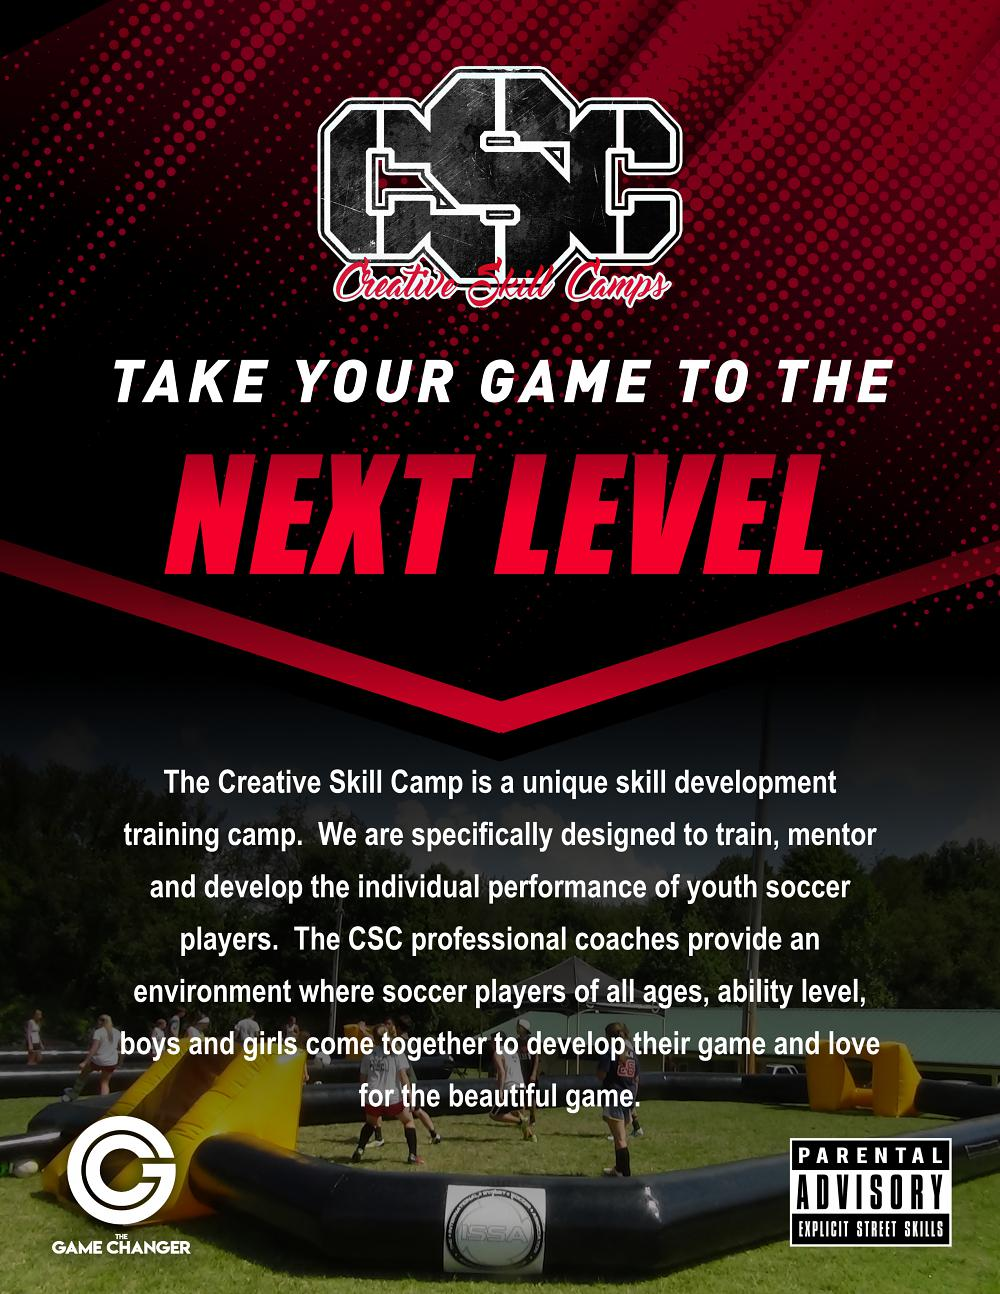 Franklin County Soccer Association (Creative Skills Camp)